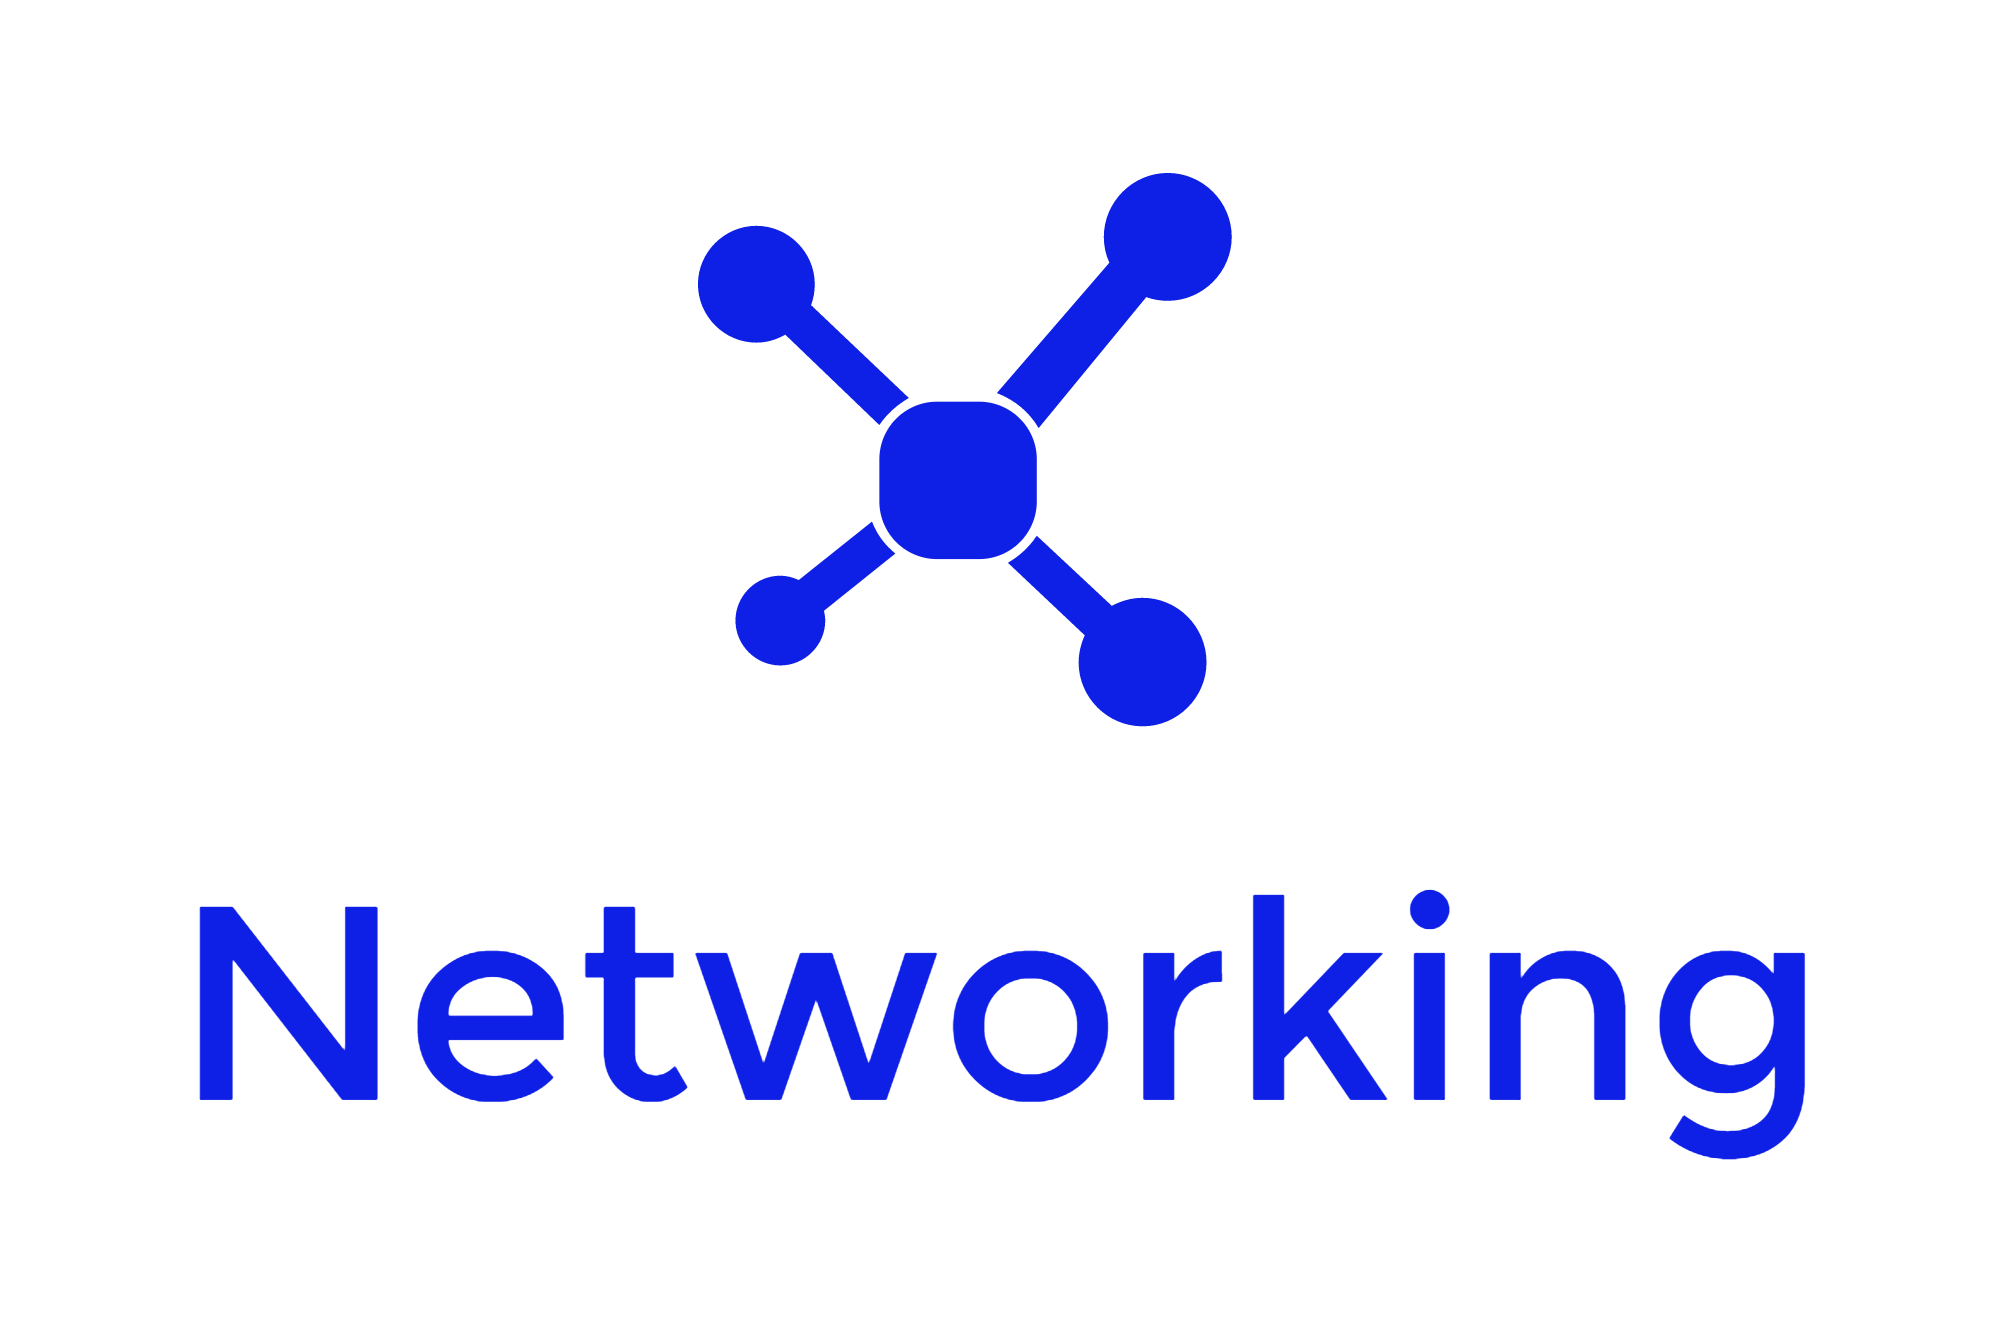 Networking-logo.png